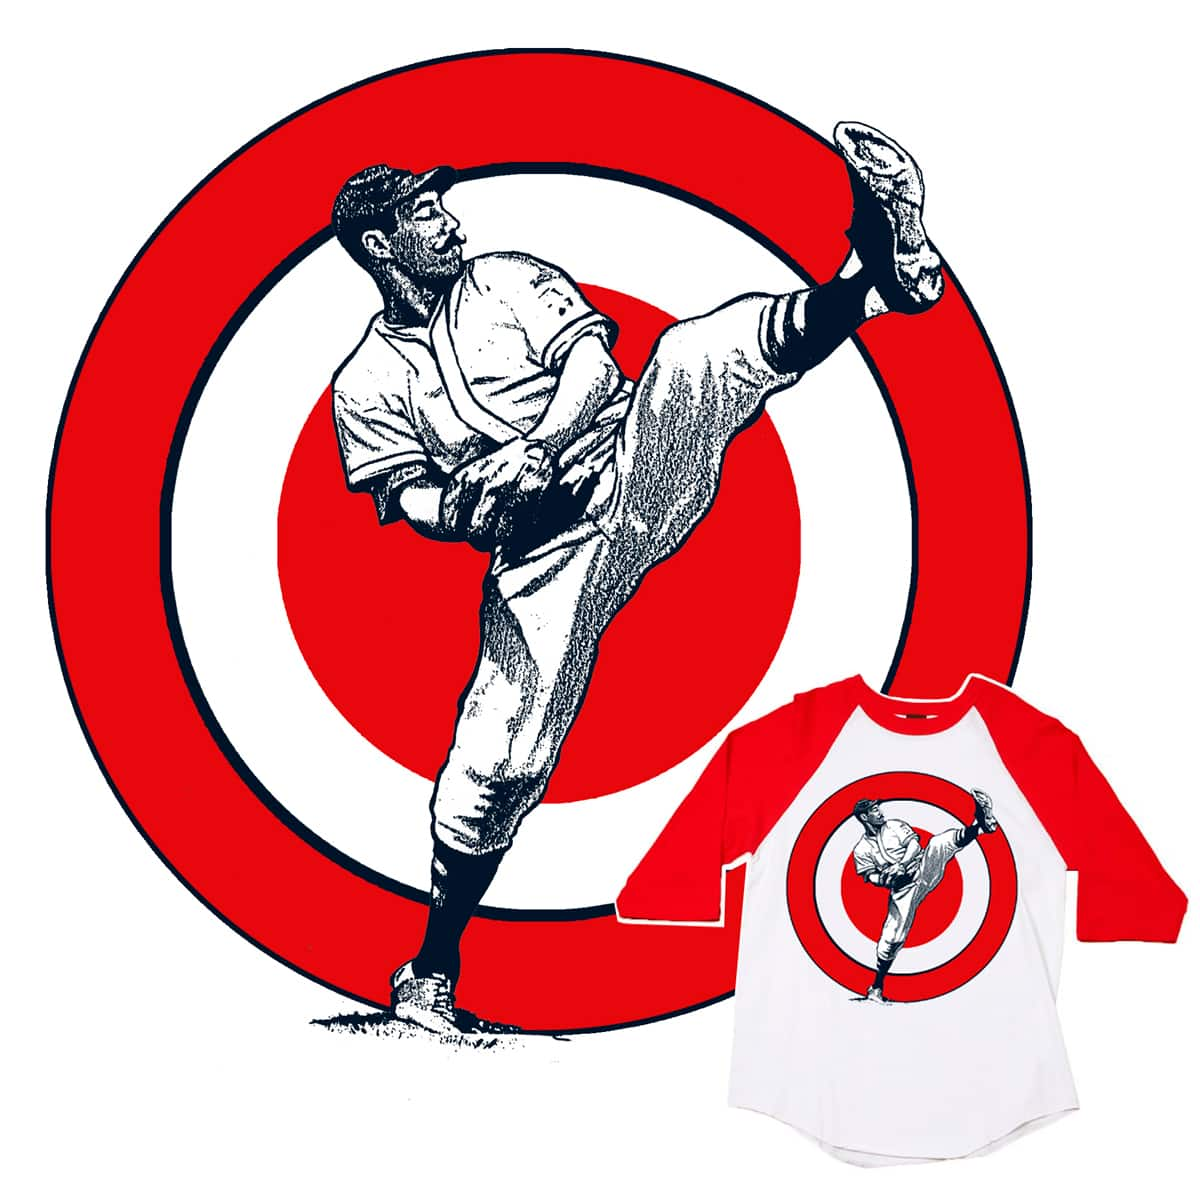 OLD SCHOOL PITCHING HEAT by JACKCRACK on Threadless